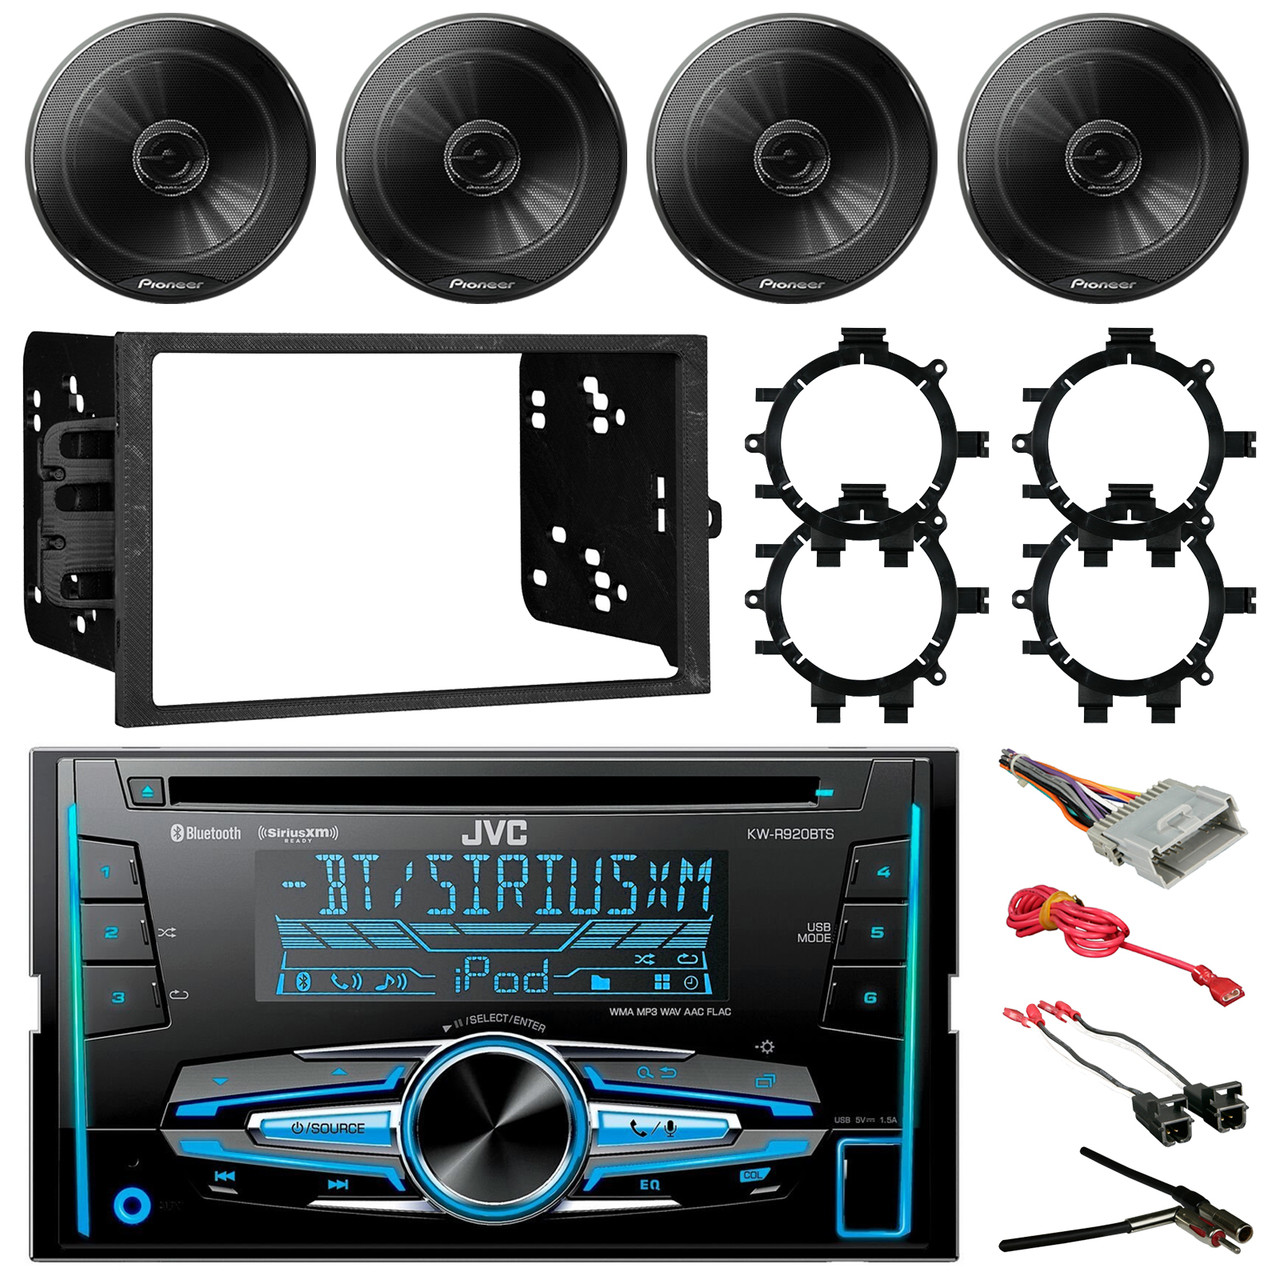 medium resolution of jvc kw r920bts double din bluetooth car cd player stereo receiver bundle combo with 4x 6 5 inch 250w coaxial speakers w brackets 4x wiring harness